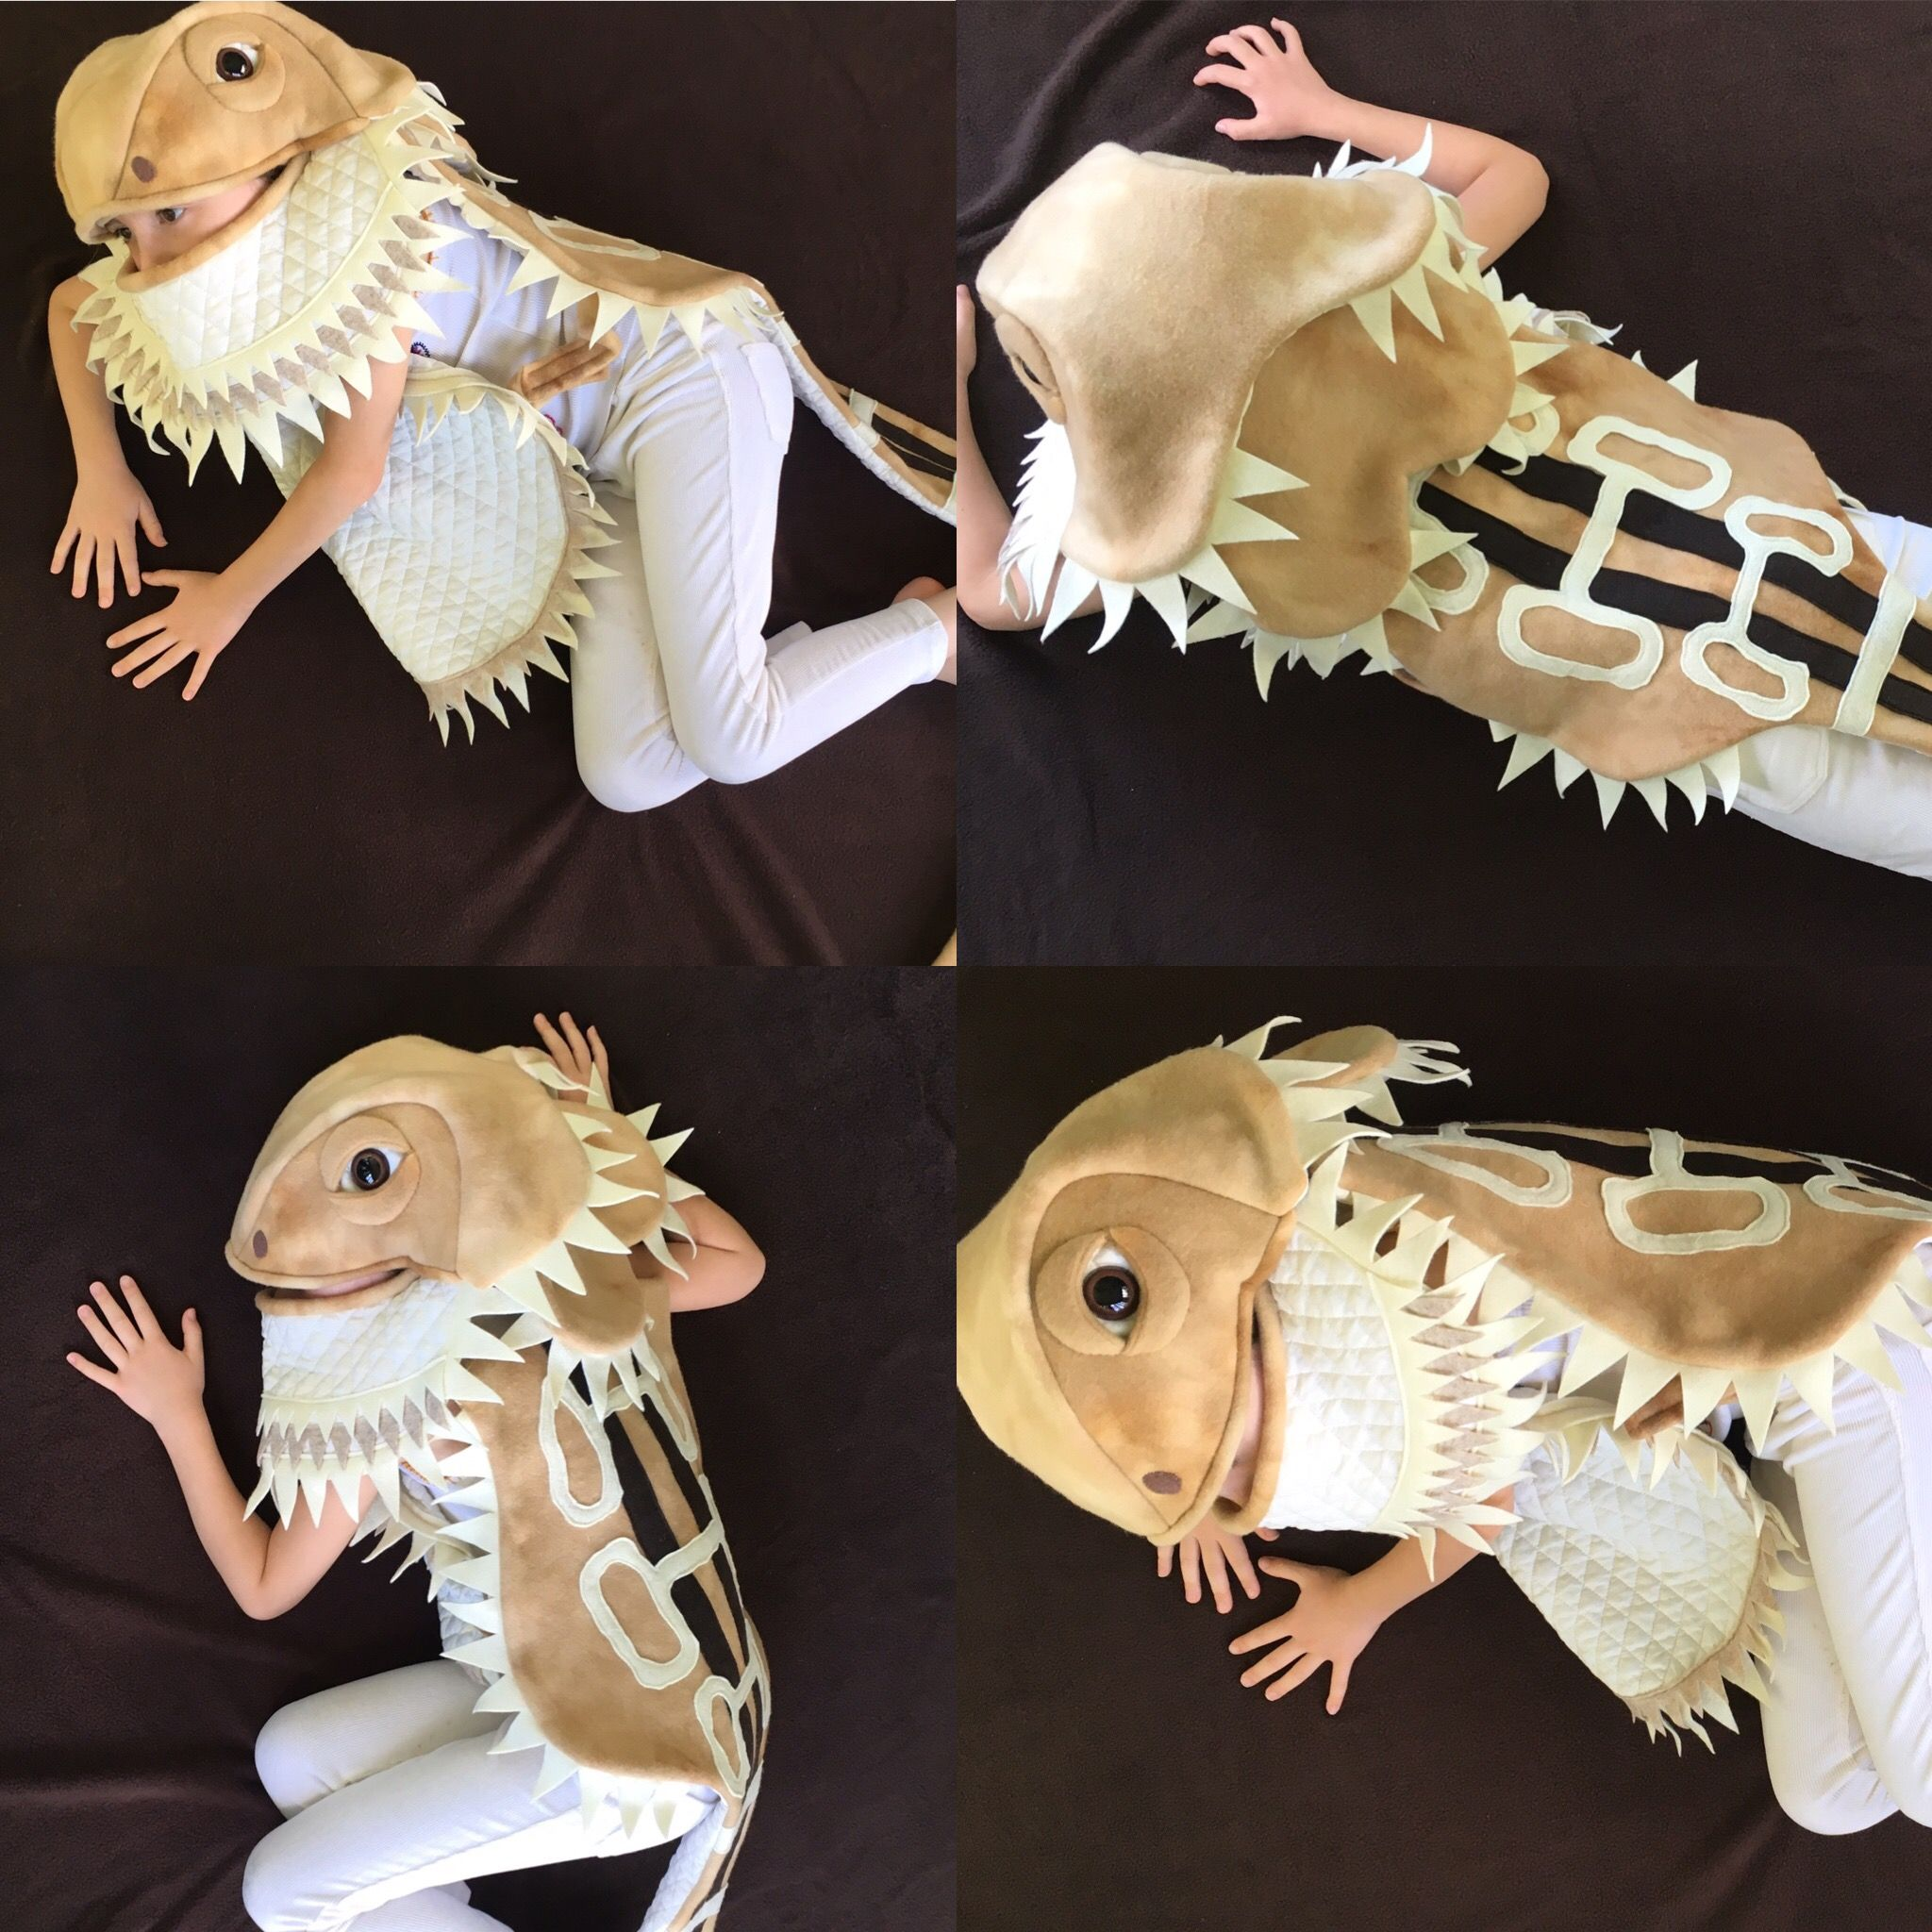 Bearded dragon Halloween costumes available September 2016 sew thrifty couture llc on Etsy & Bearded dragon Halloween costumes available September 2016 sew ...